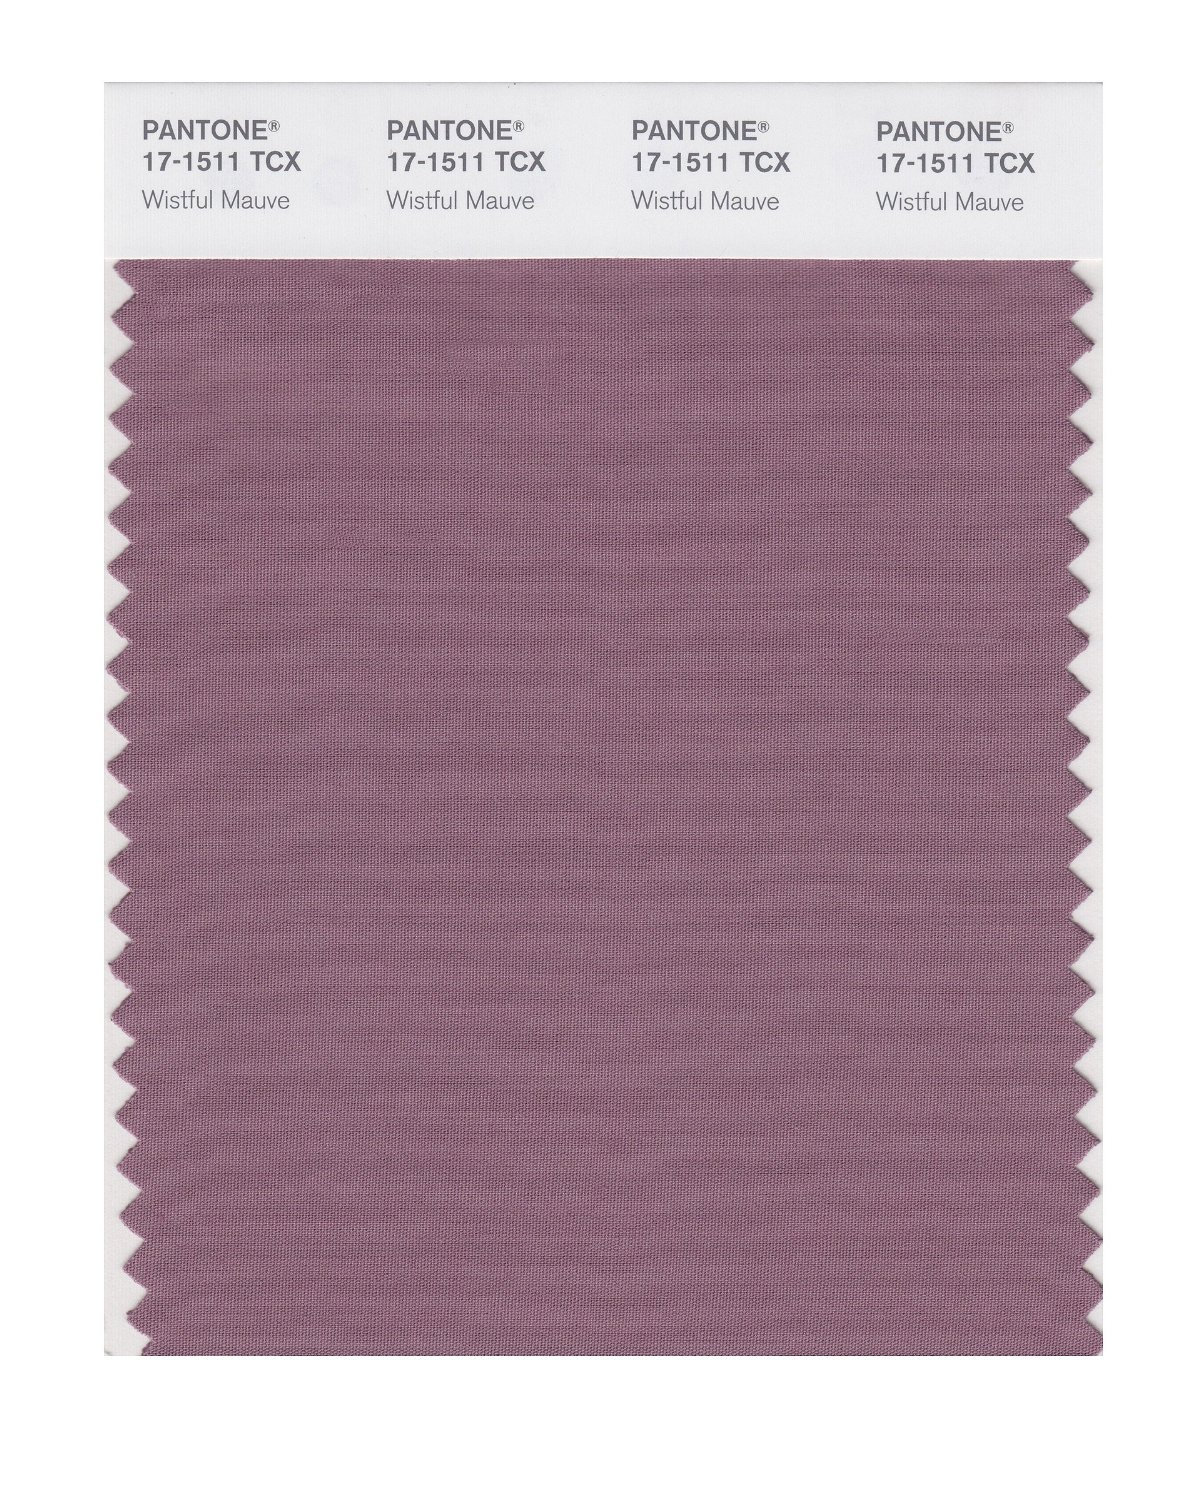 Pantone Smart Swatch 17-1511 Wistful Mauve